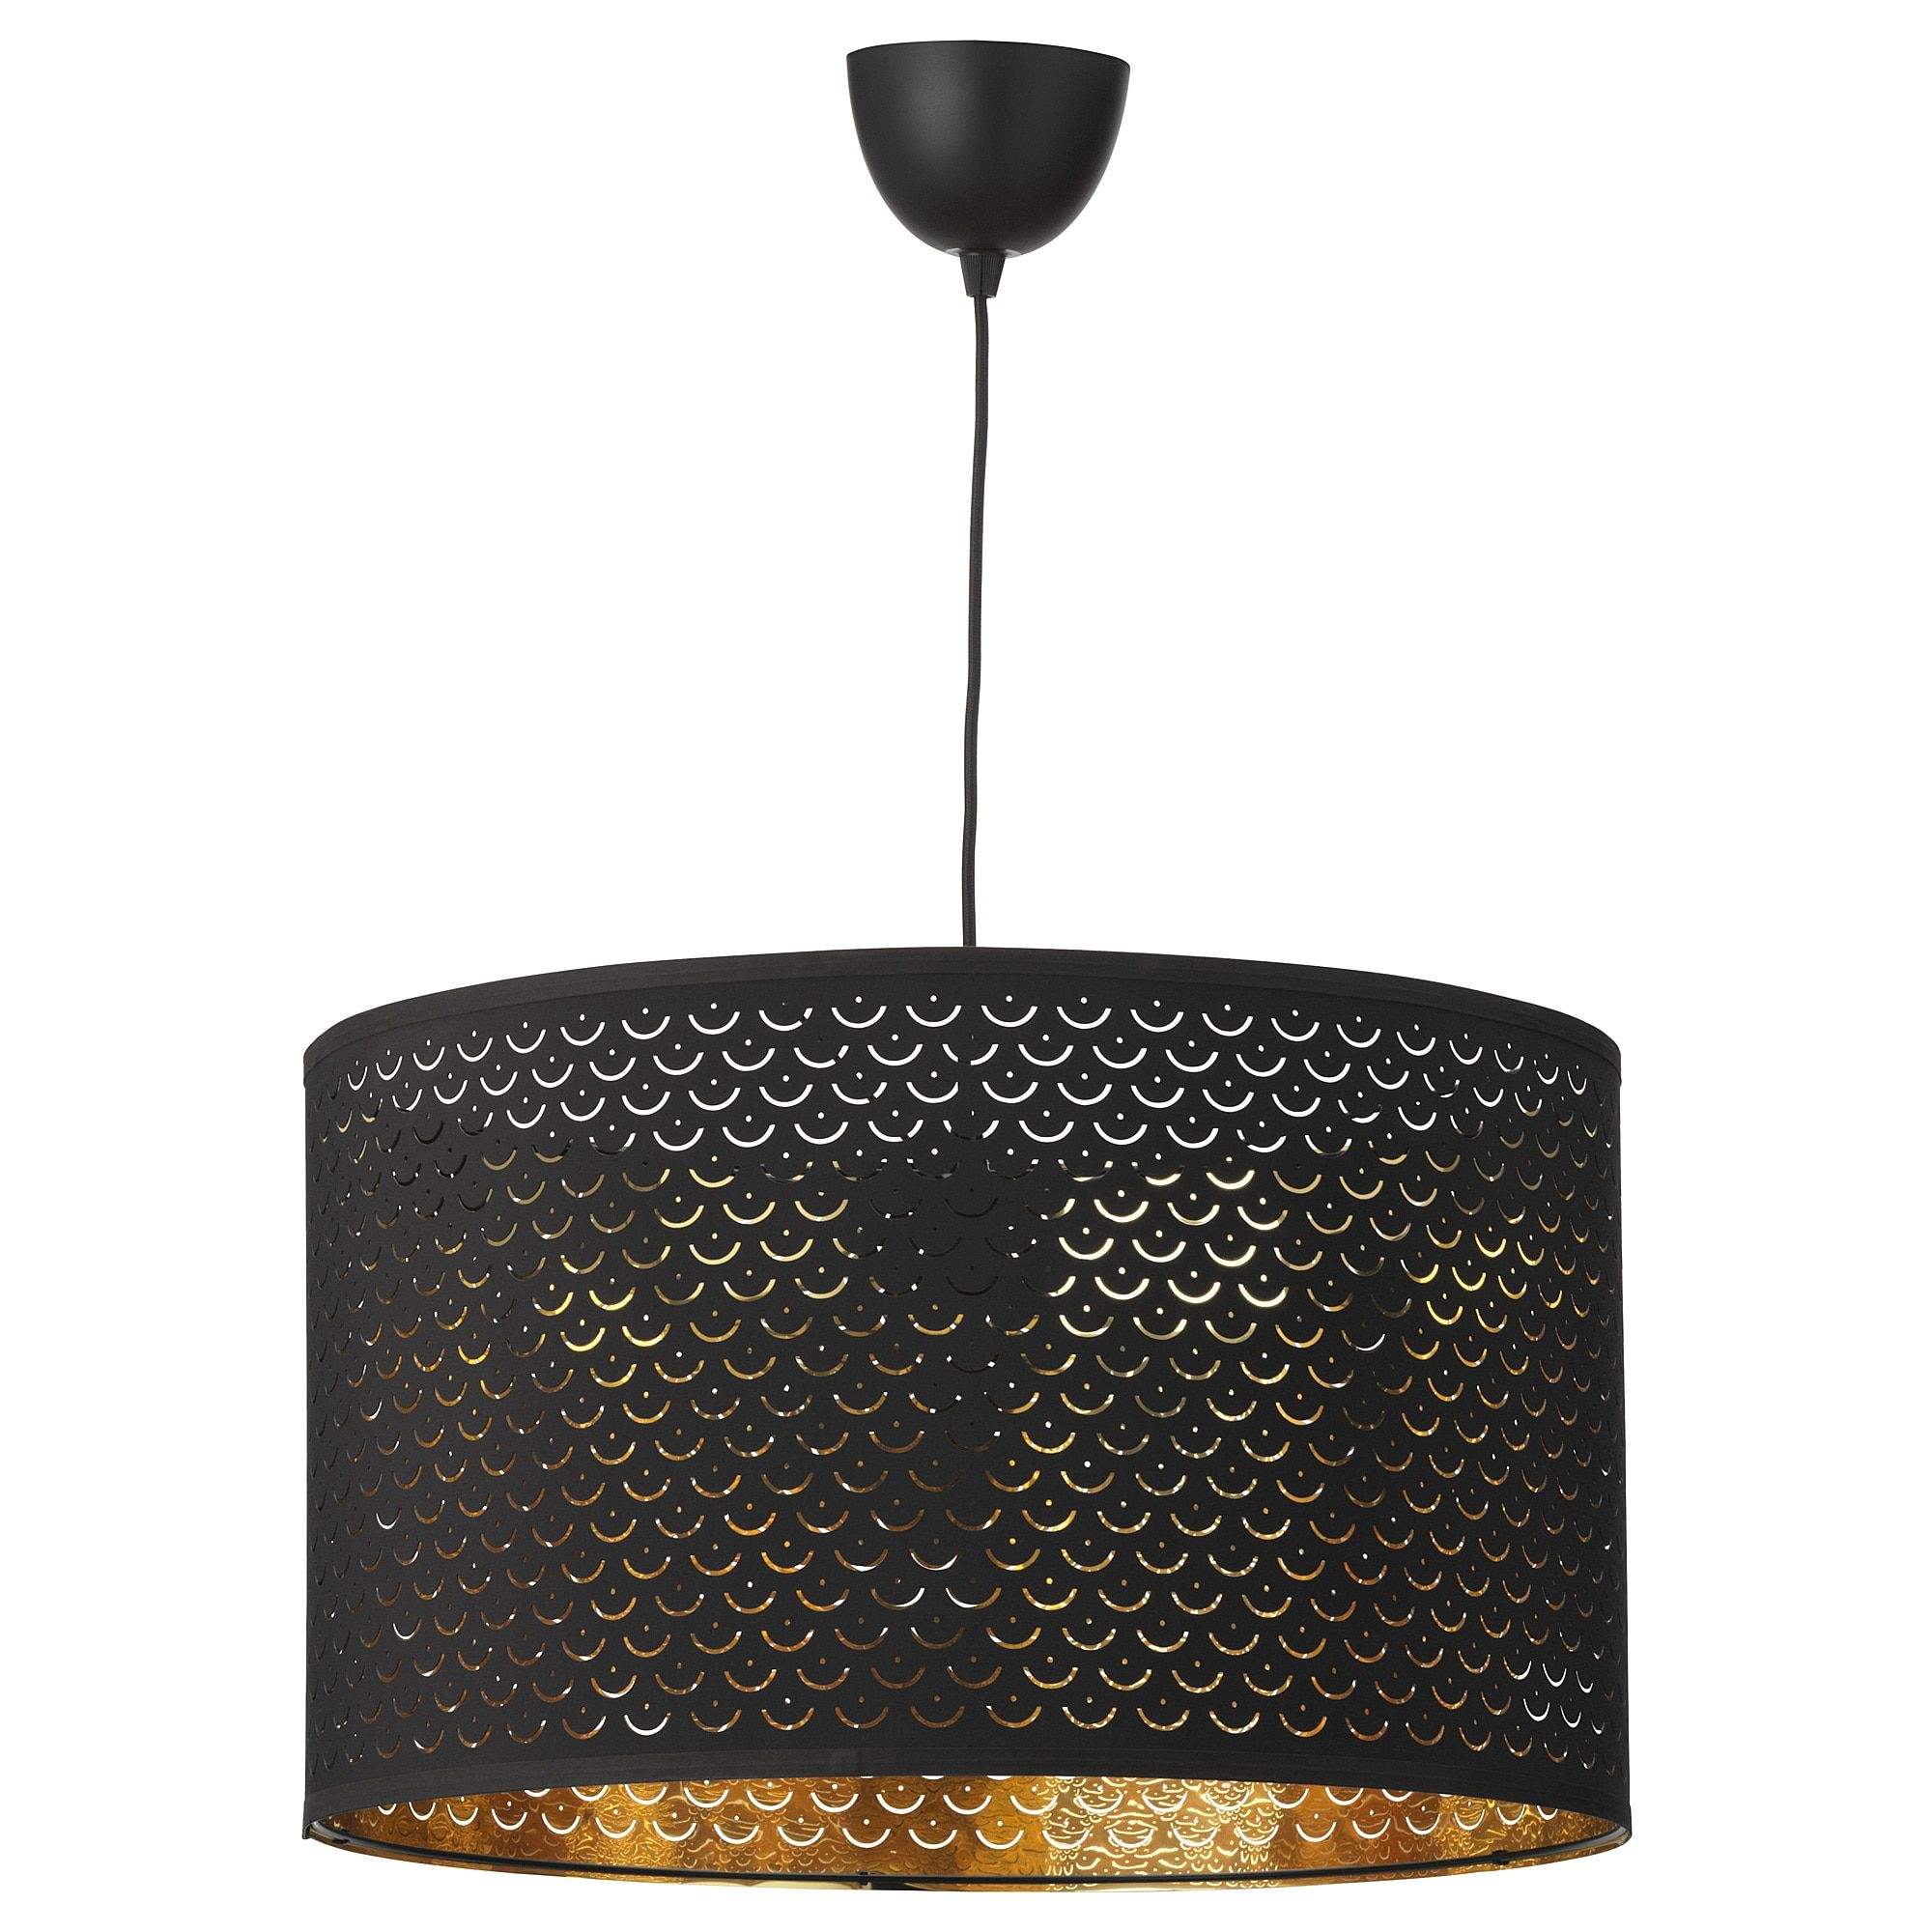 Creates A Decorative Light Pattern In The Room When The Light Shines Through The Perforated Shade Hanglamp Lampenkap Lampvoeten